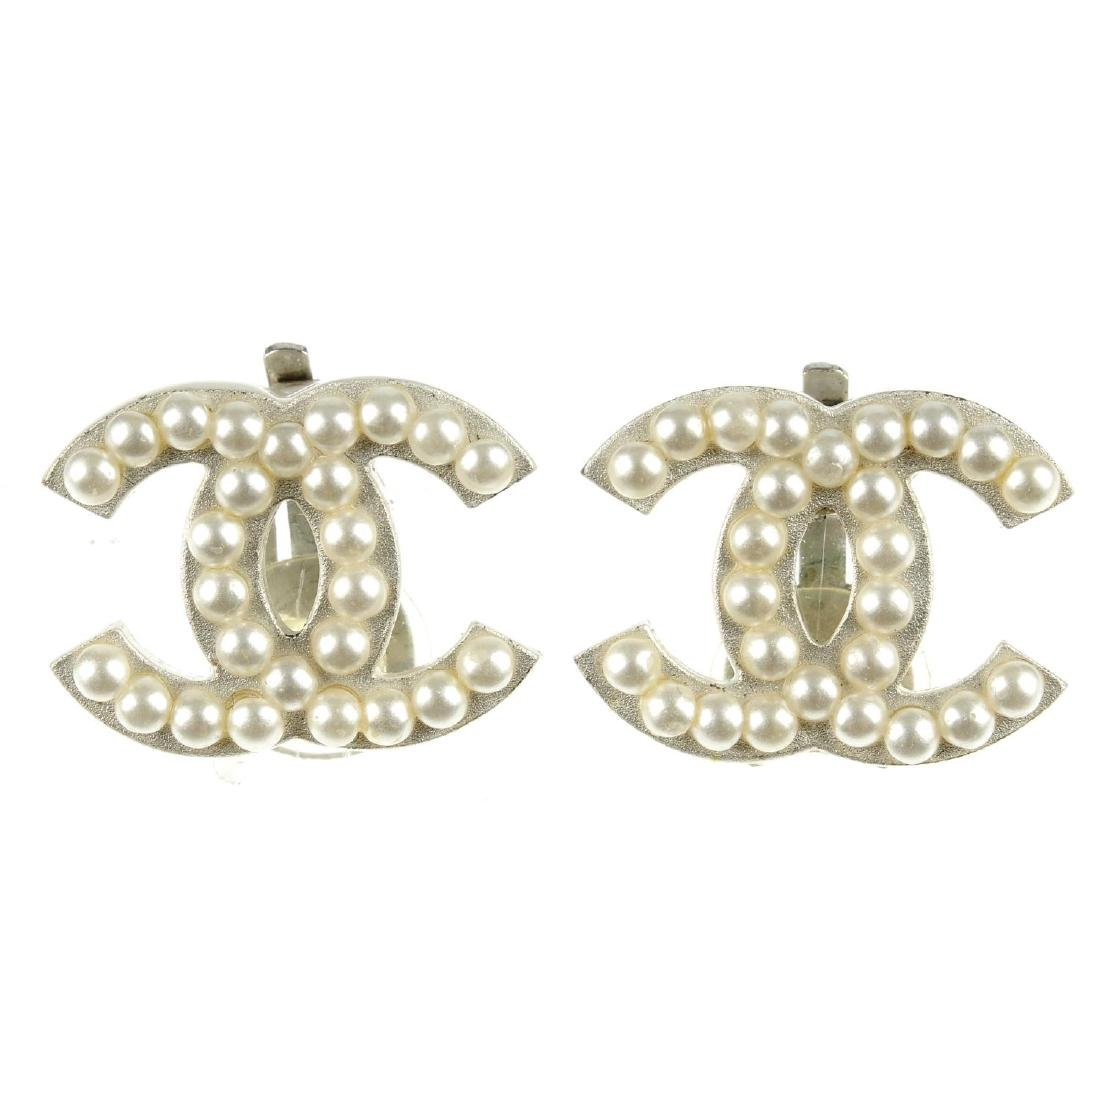 CHANEL - a pair of earrings. Each designed as two